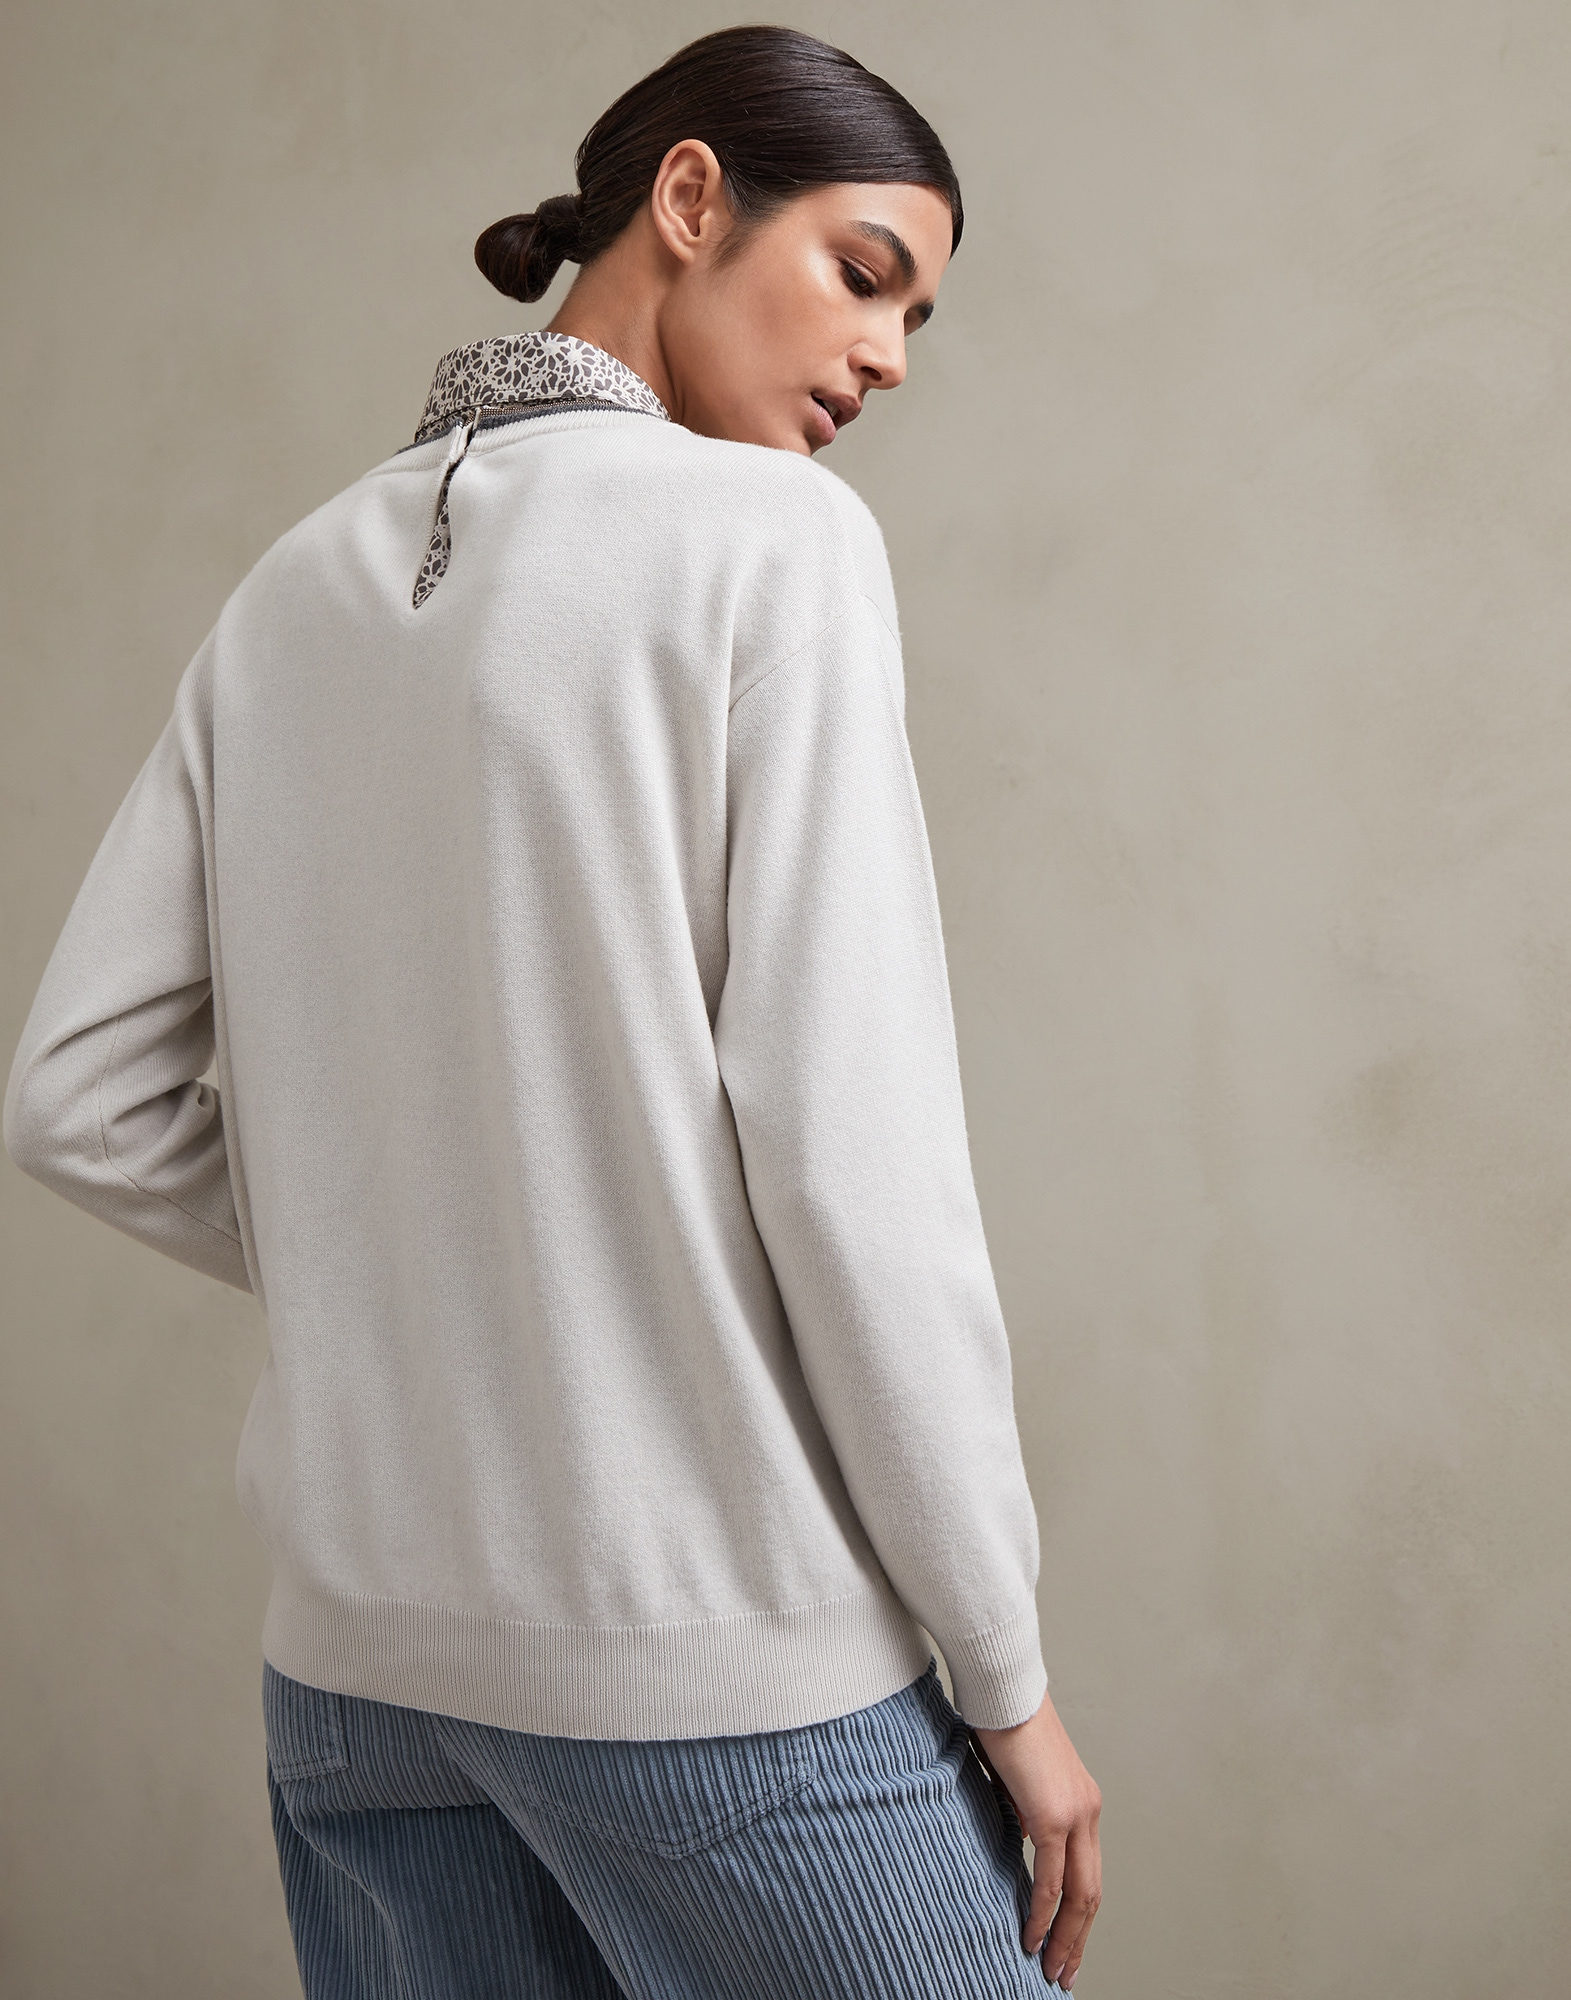 Crewneck Sweater - Back view